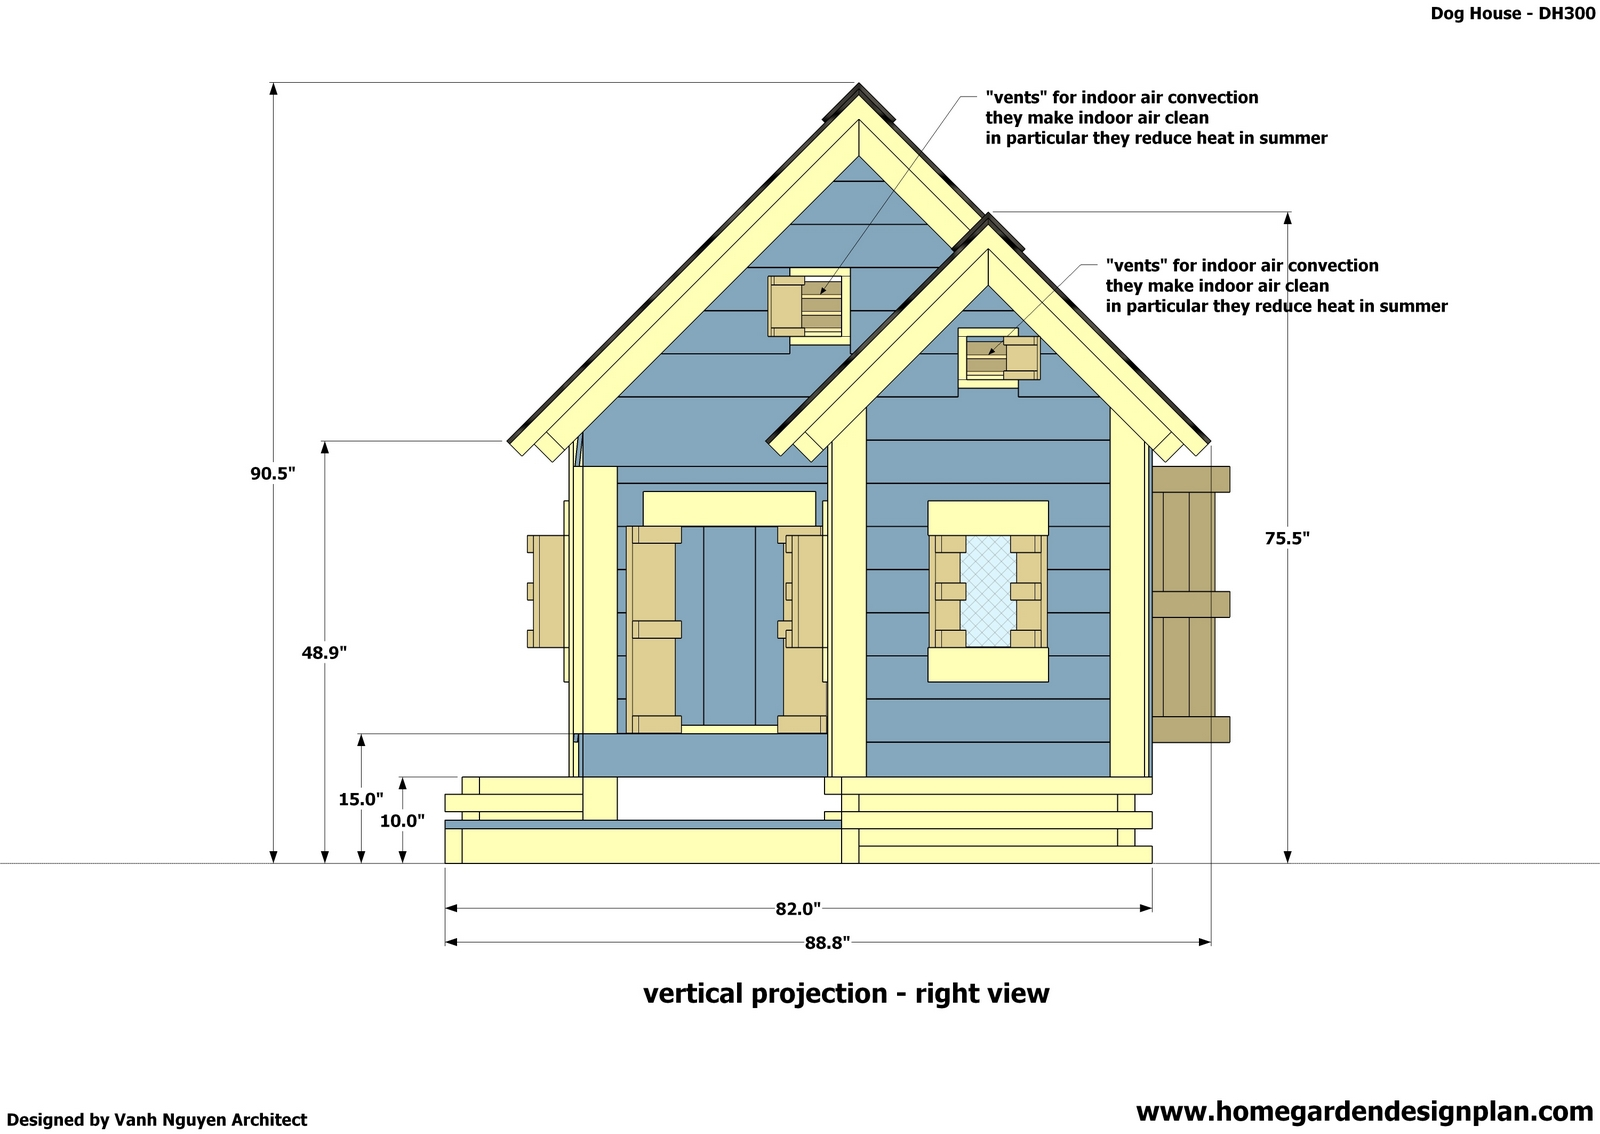 Free winter dog house plans floor plans for How to get building plans for your house